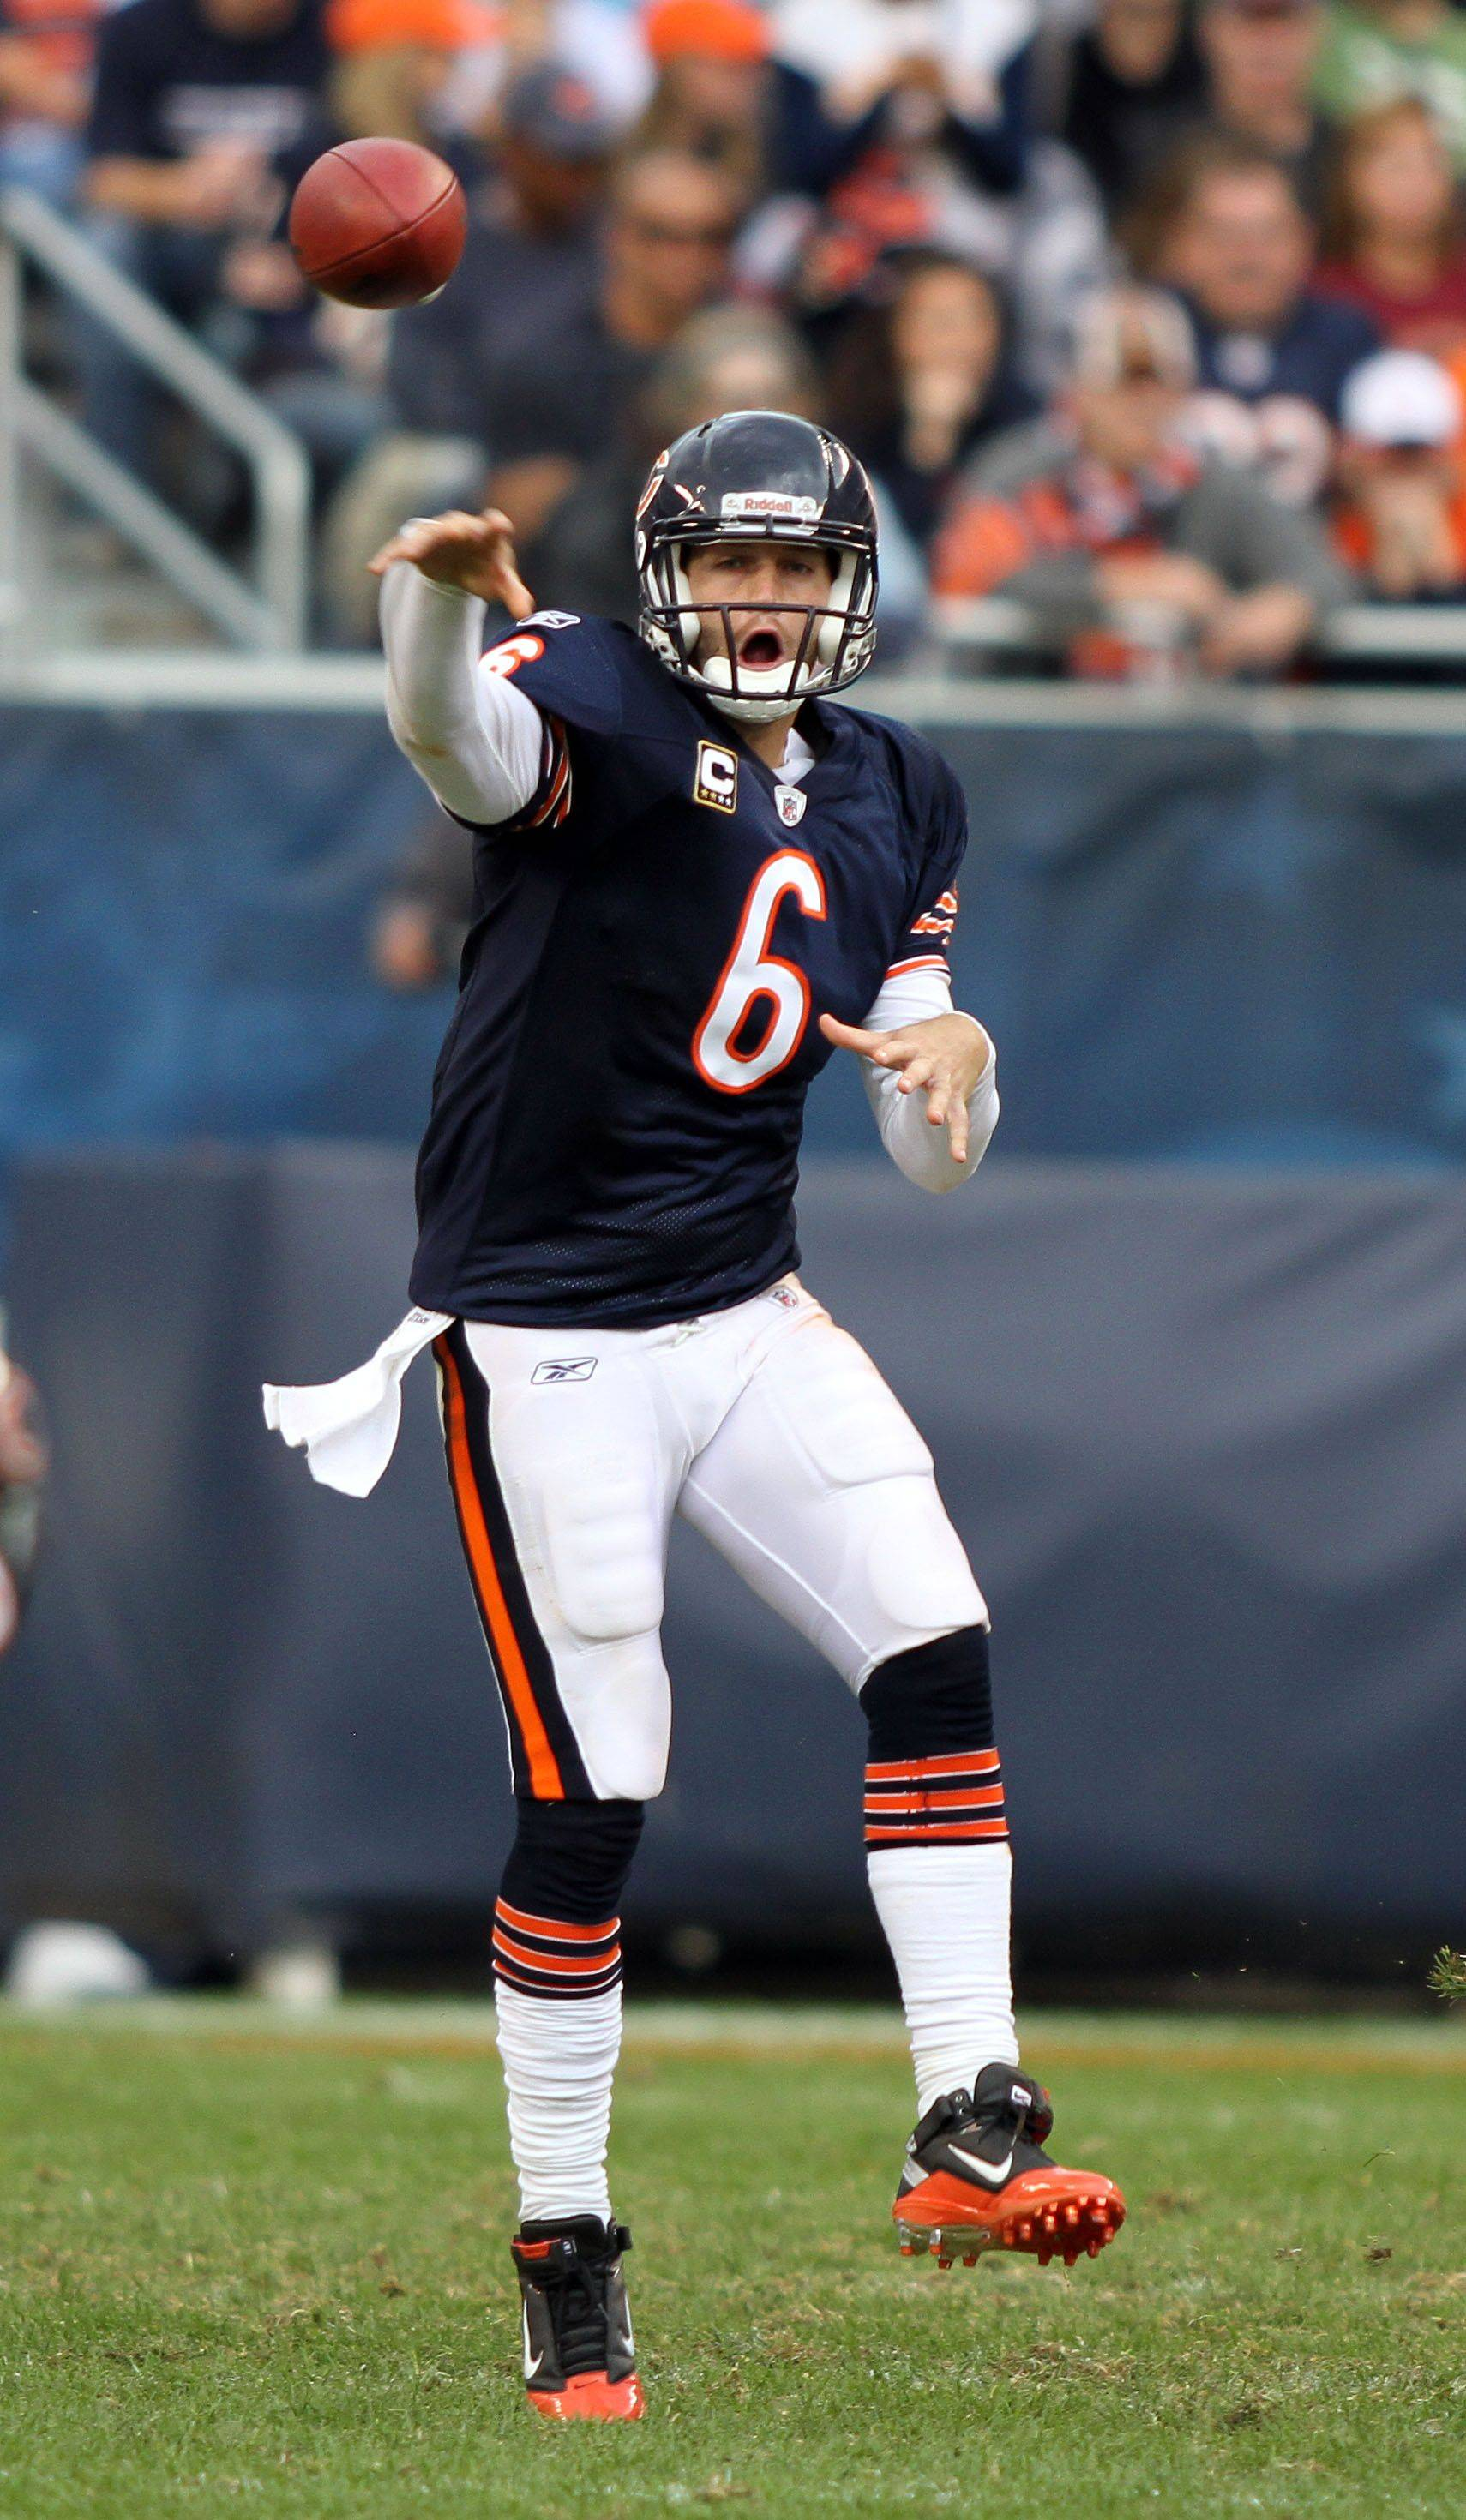 Chicago Bears quarterback Jay Cutler throws during the Bears' 14-17 loss to the Redskins.